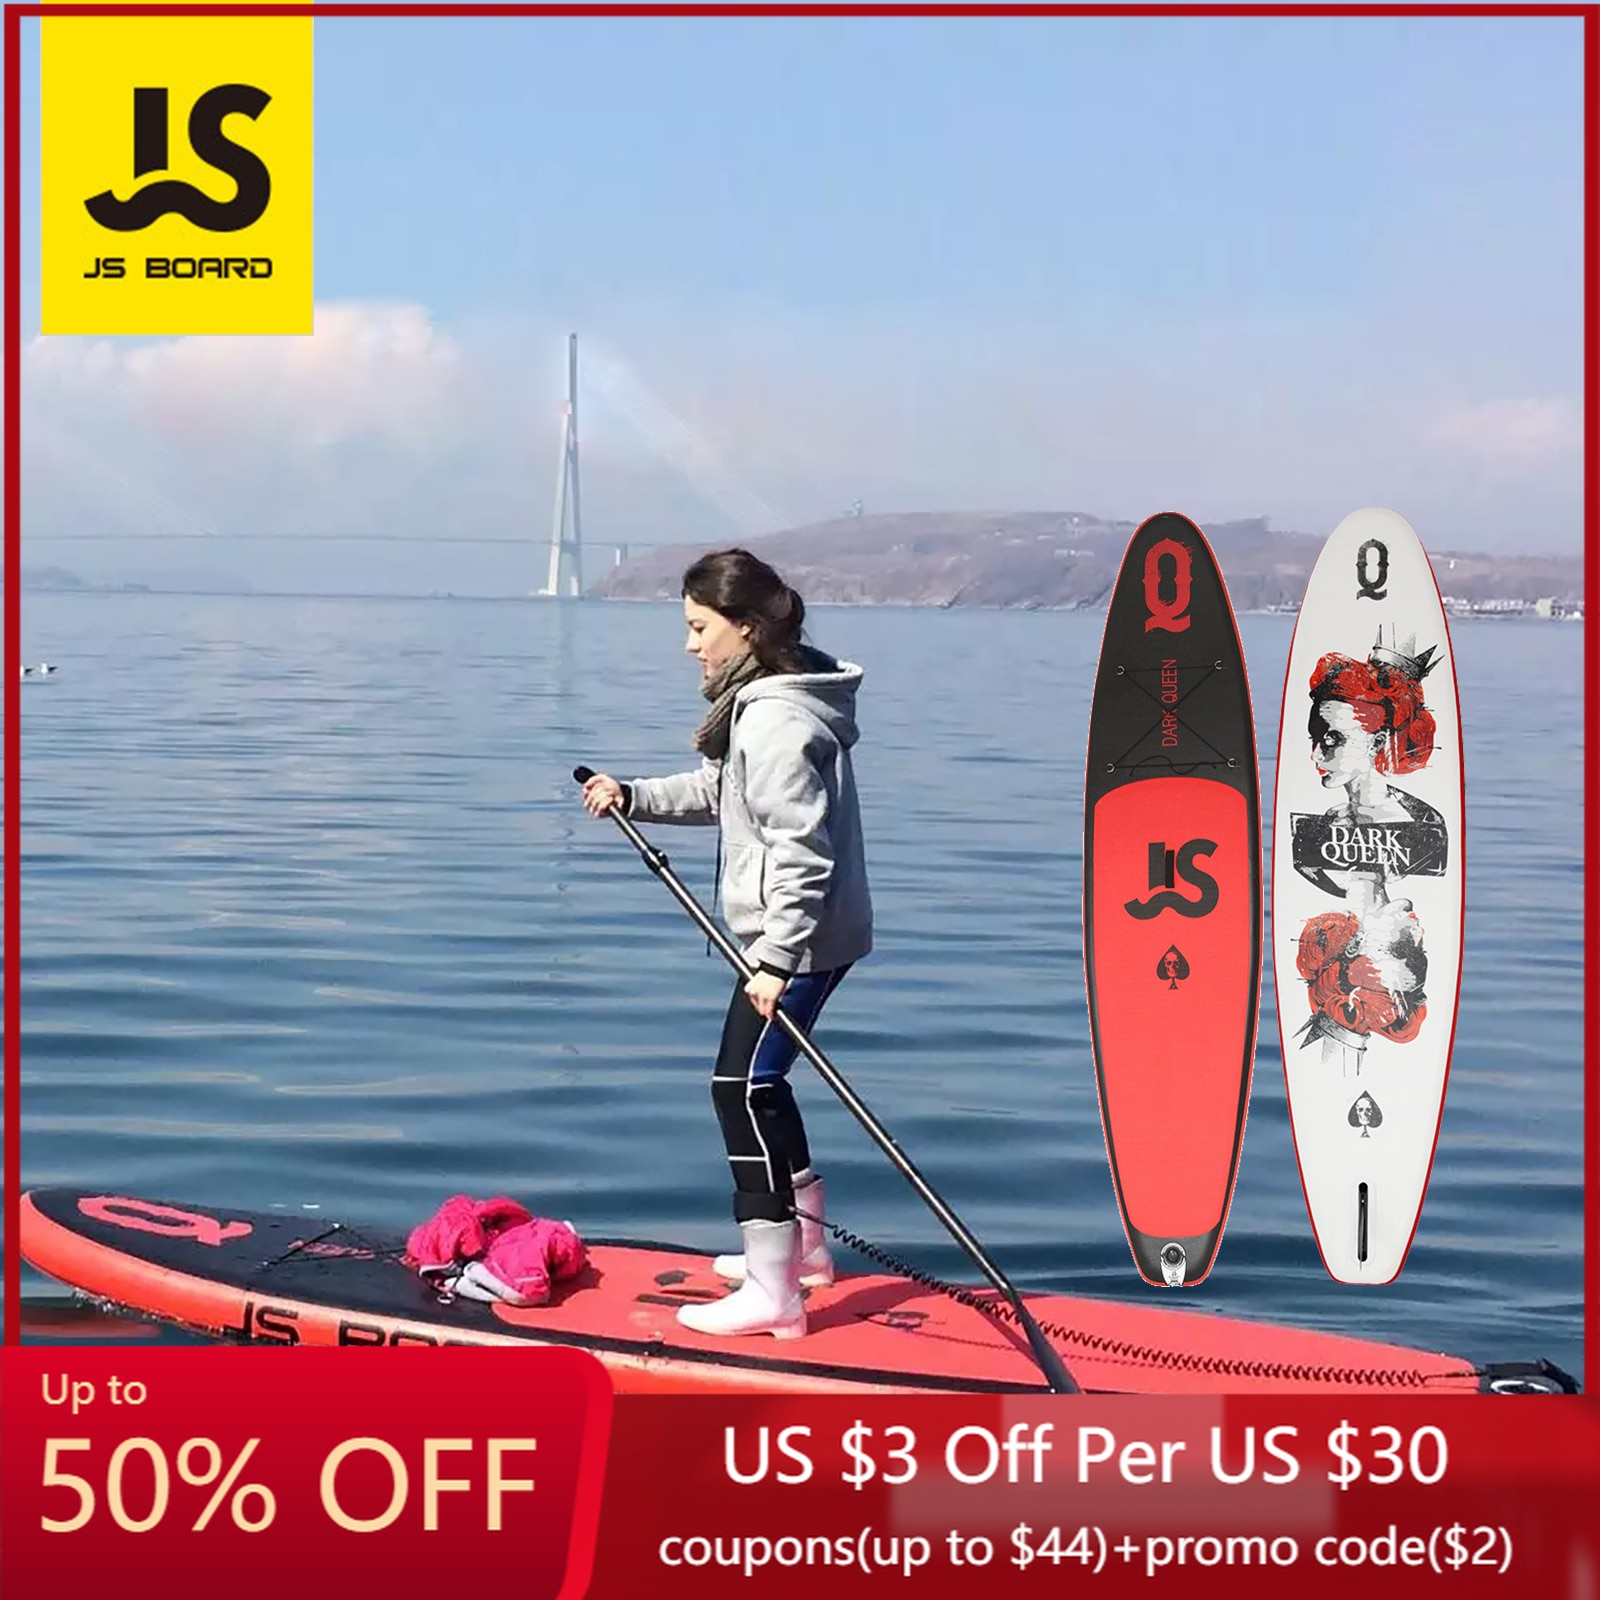 JS RQ335 SUP Surfboard Paddle Board Queen Standing  kitesurf Yoga Inflatable Slab Portable Waterboard Water Sports Surfing 335cm